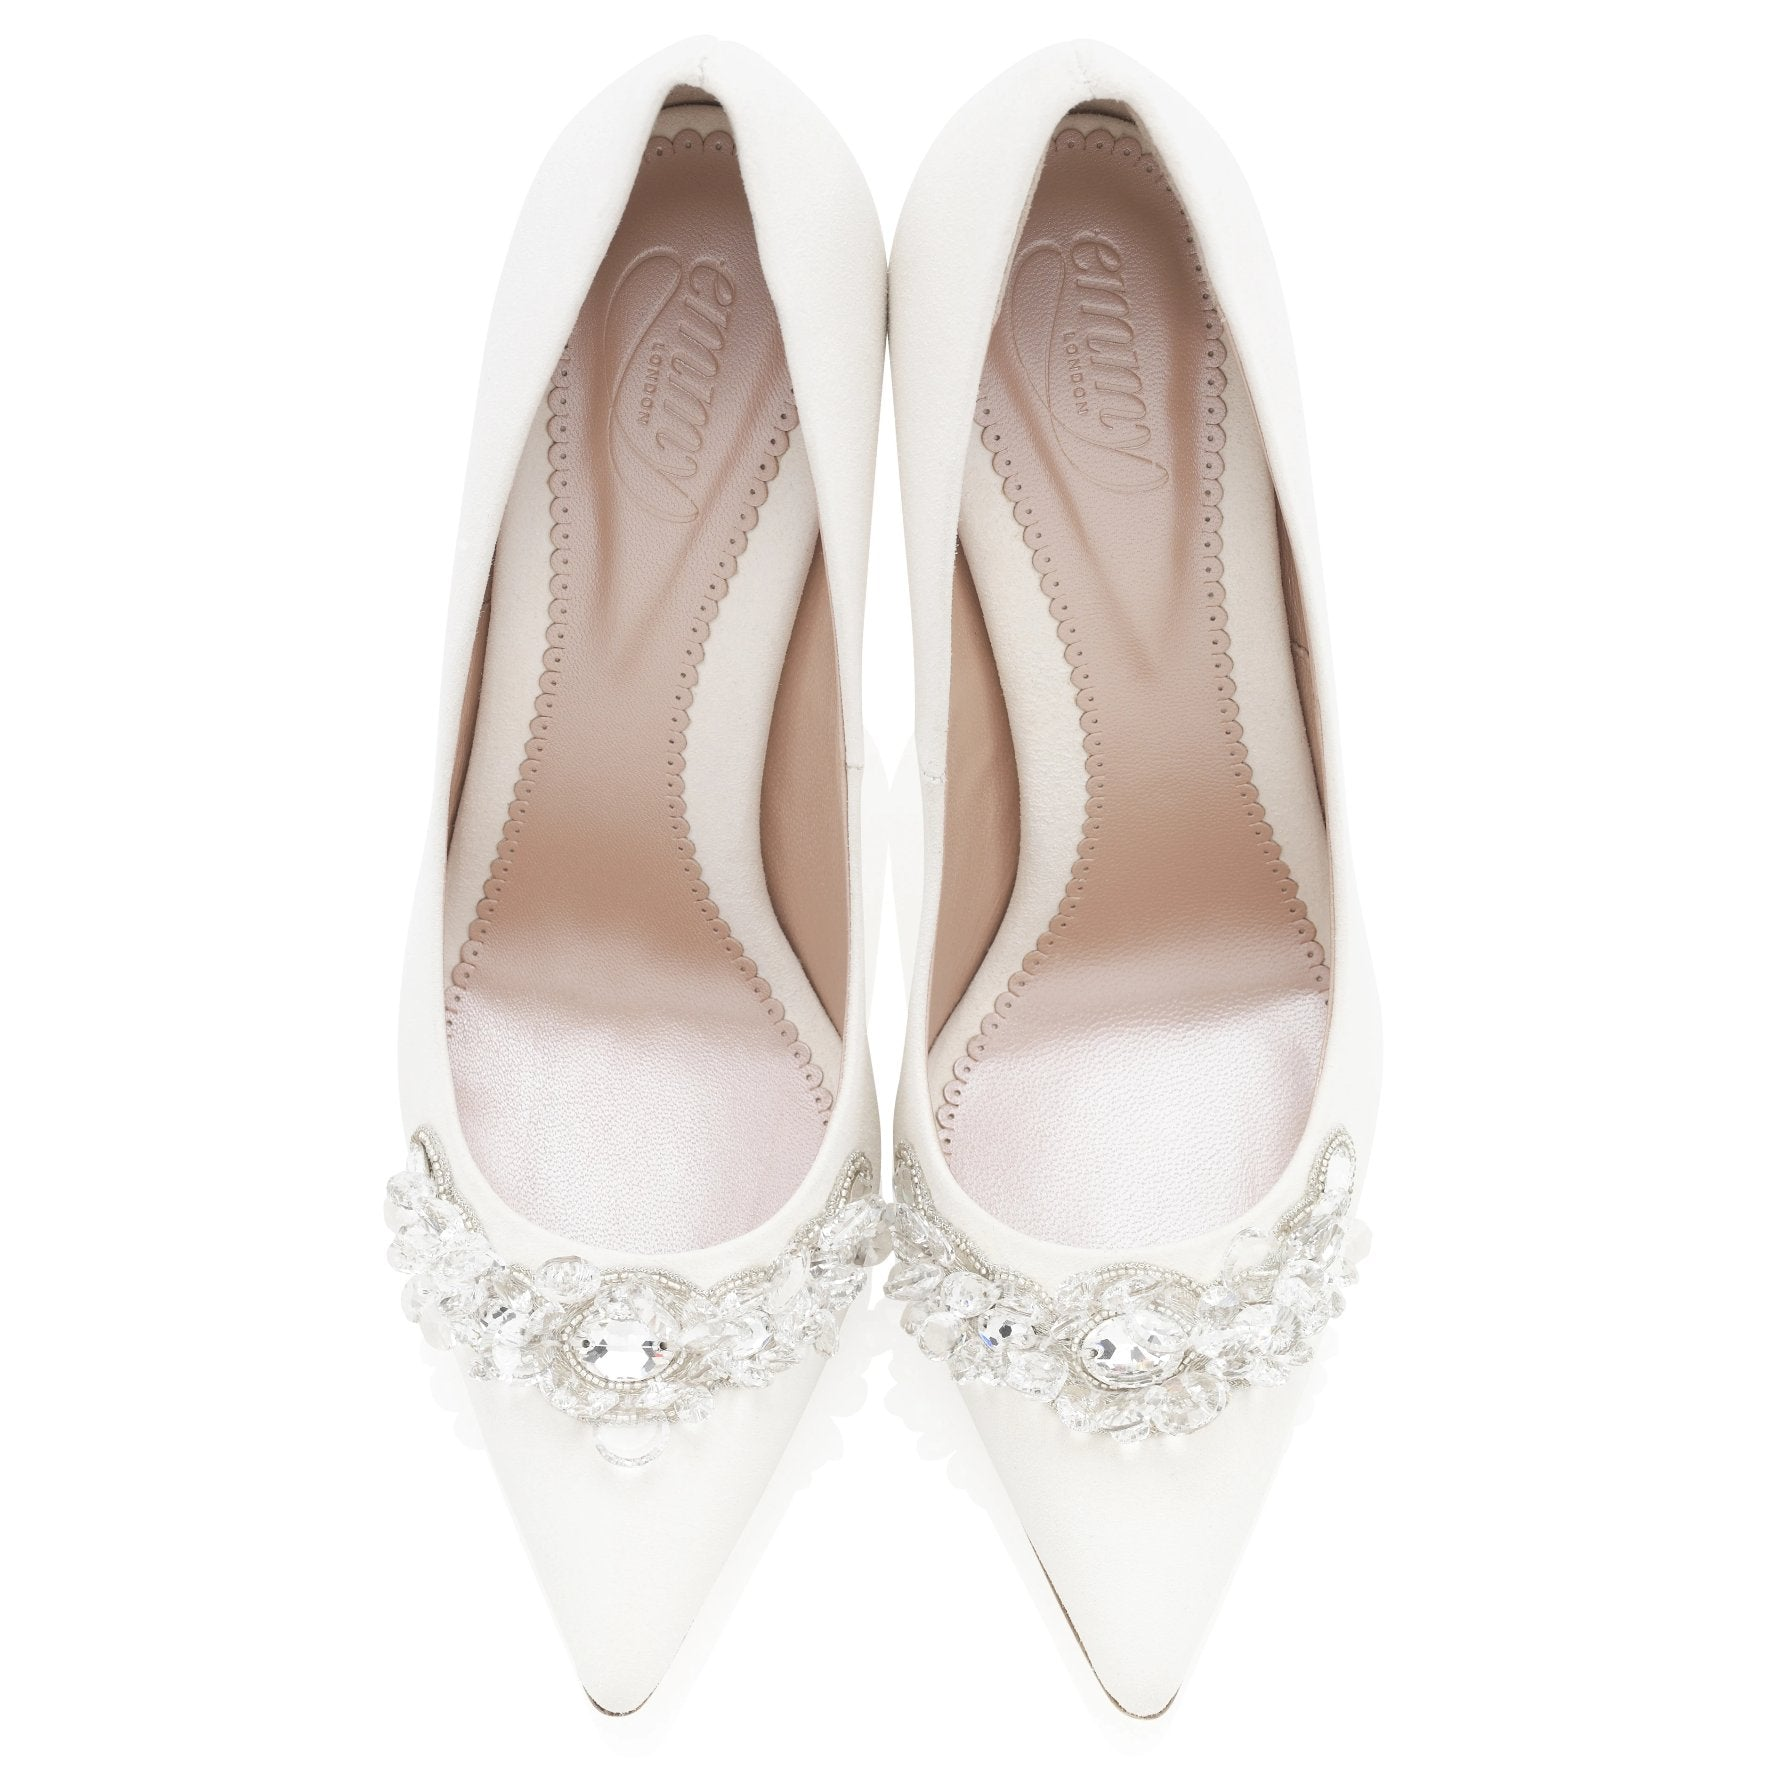 Embellished Ivory Bridal Court Shoes By Emmy London